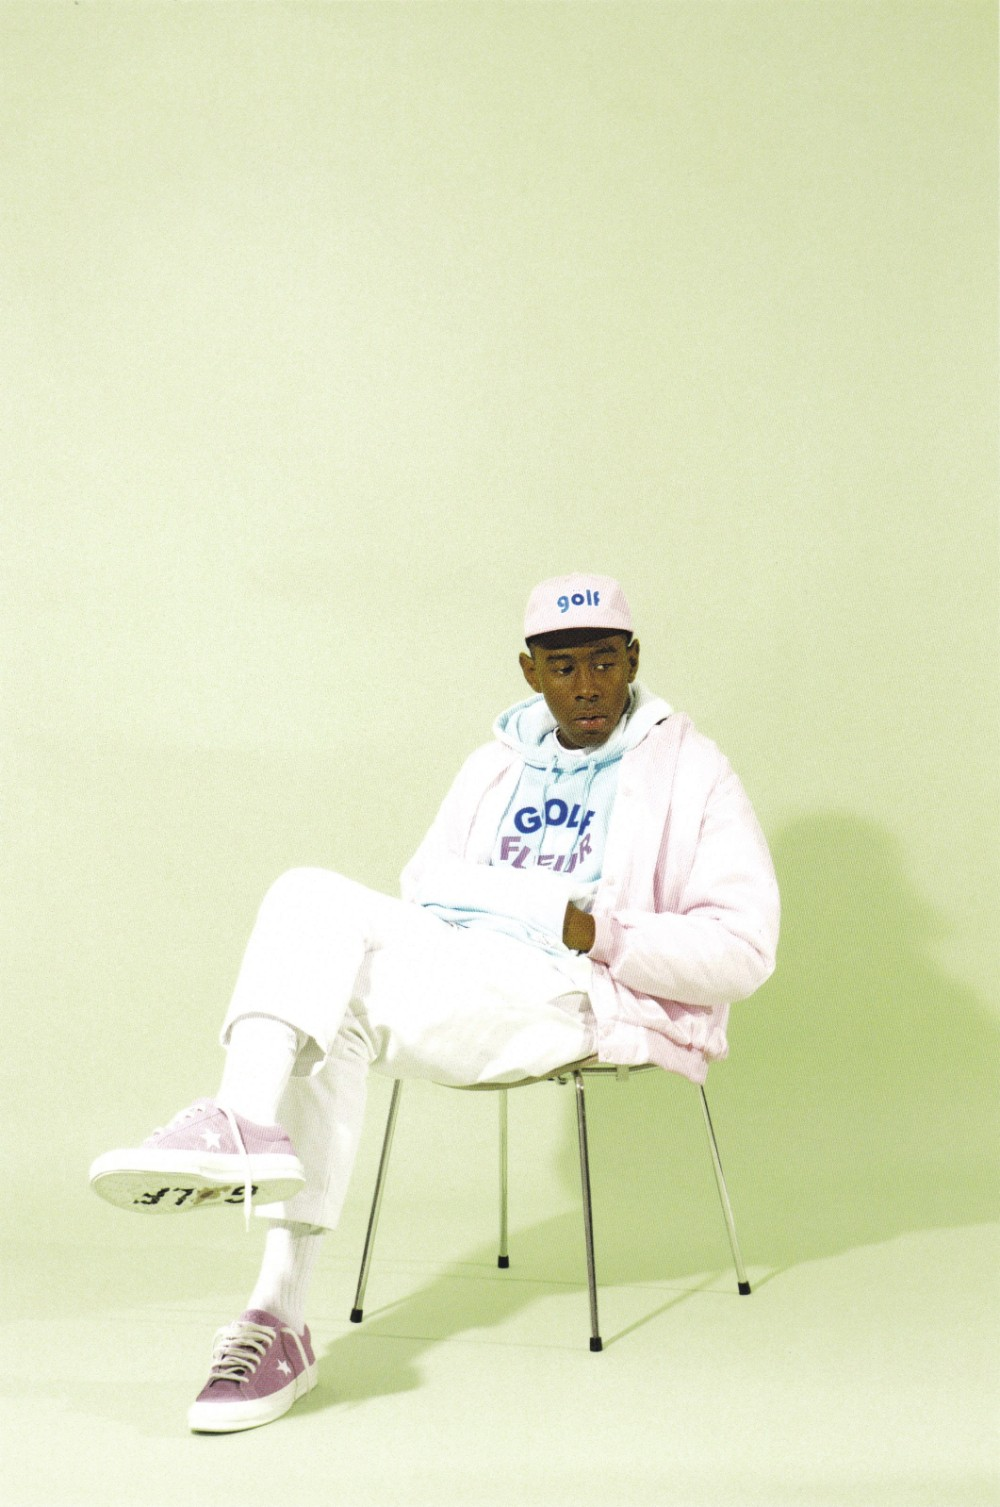 Converse One Star x Golf le Fleur set to release